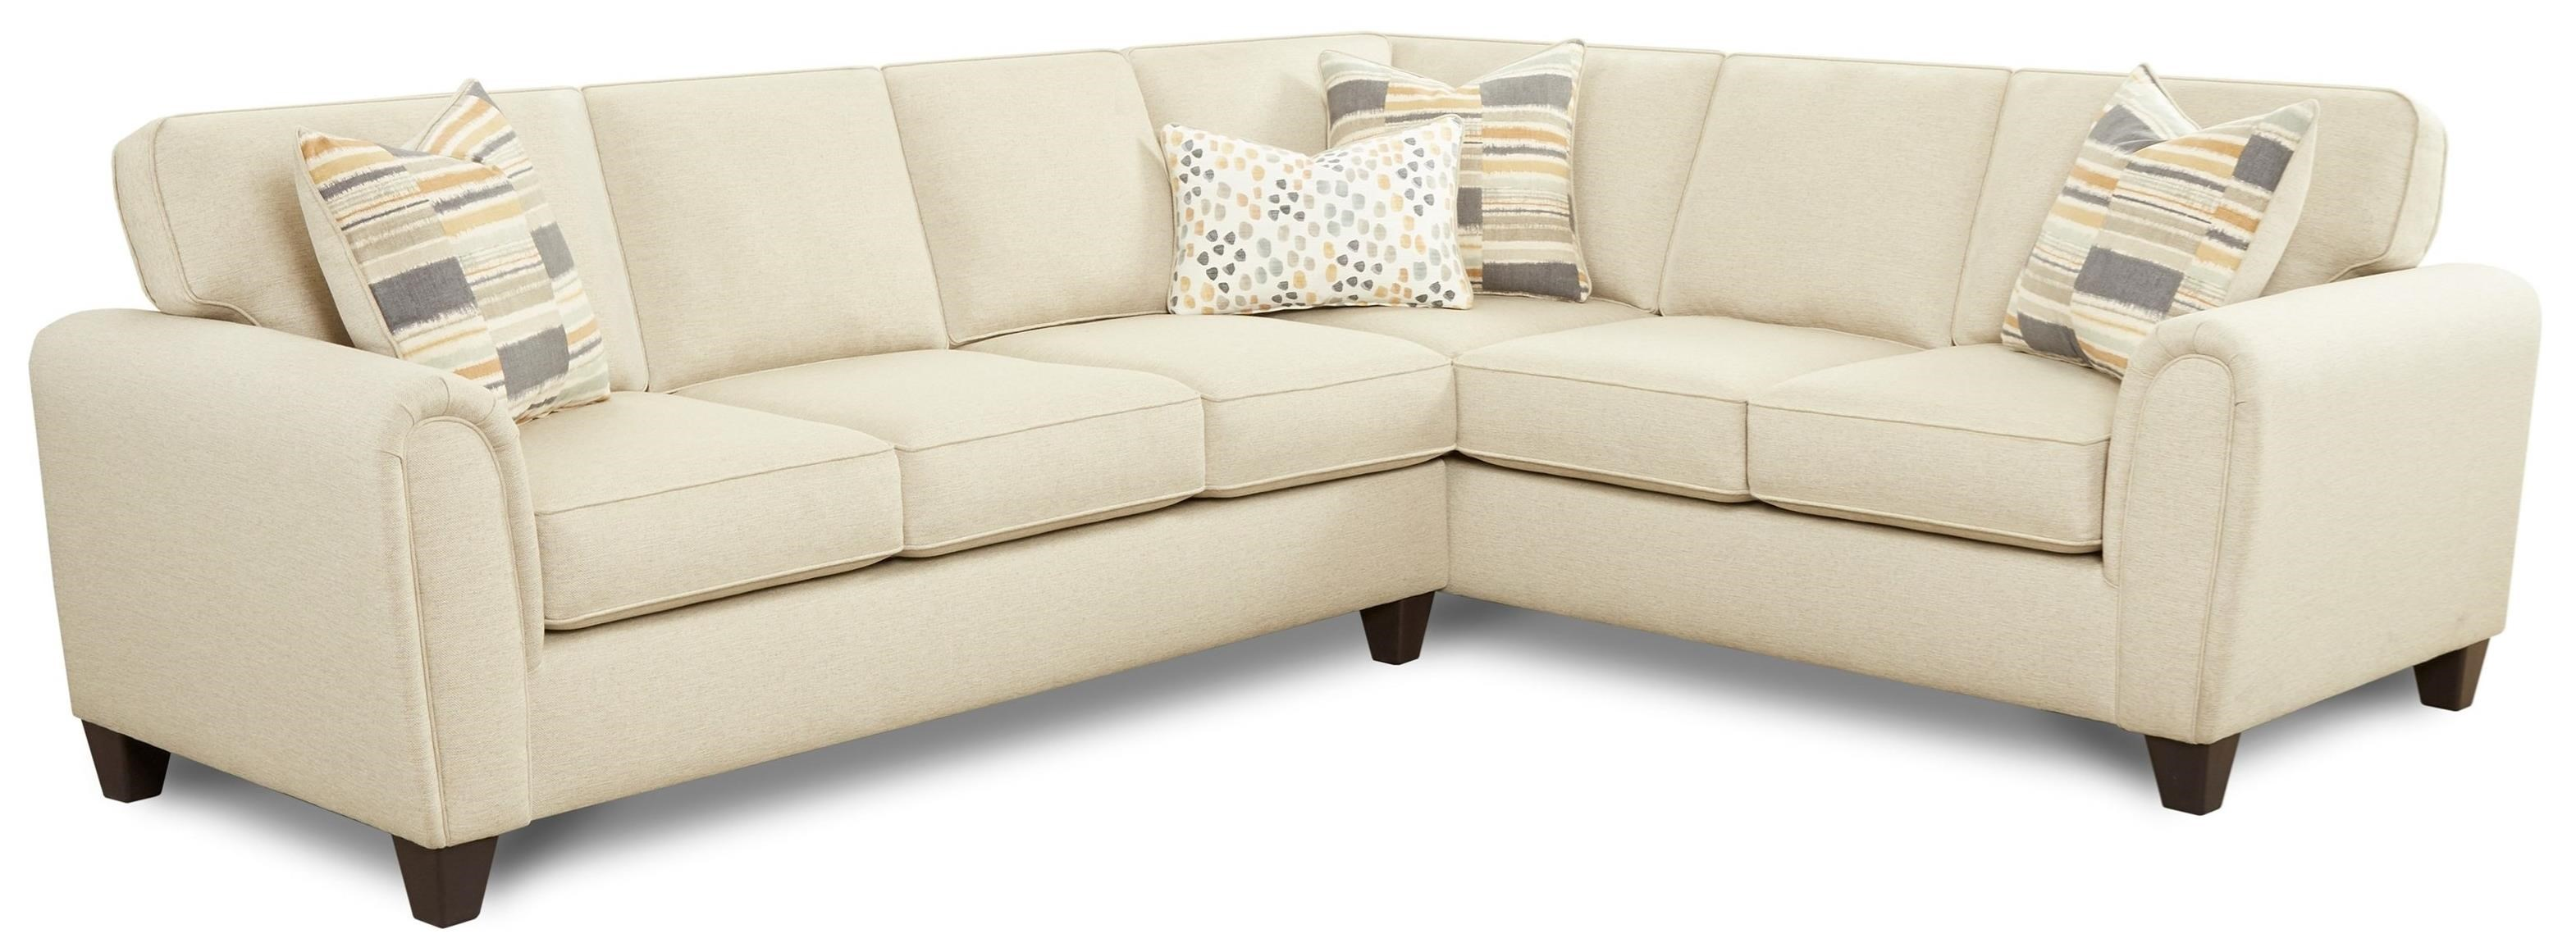 2-Piece L-Shape Sectional